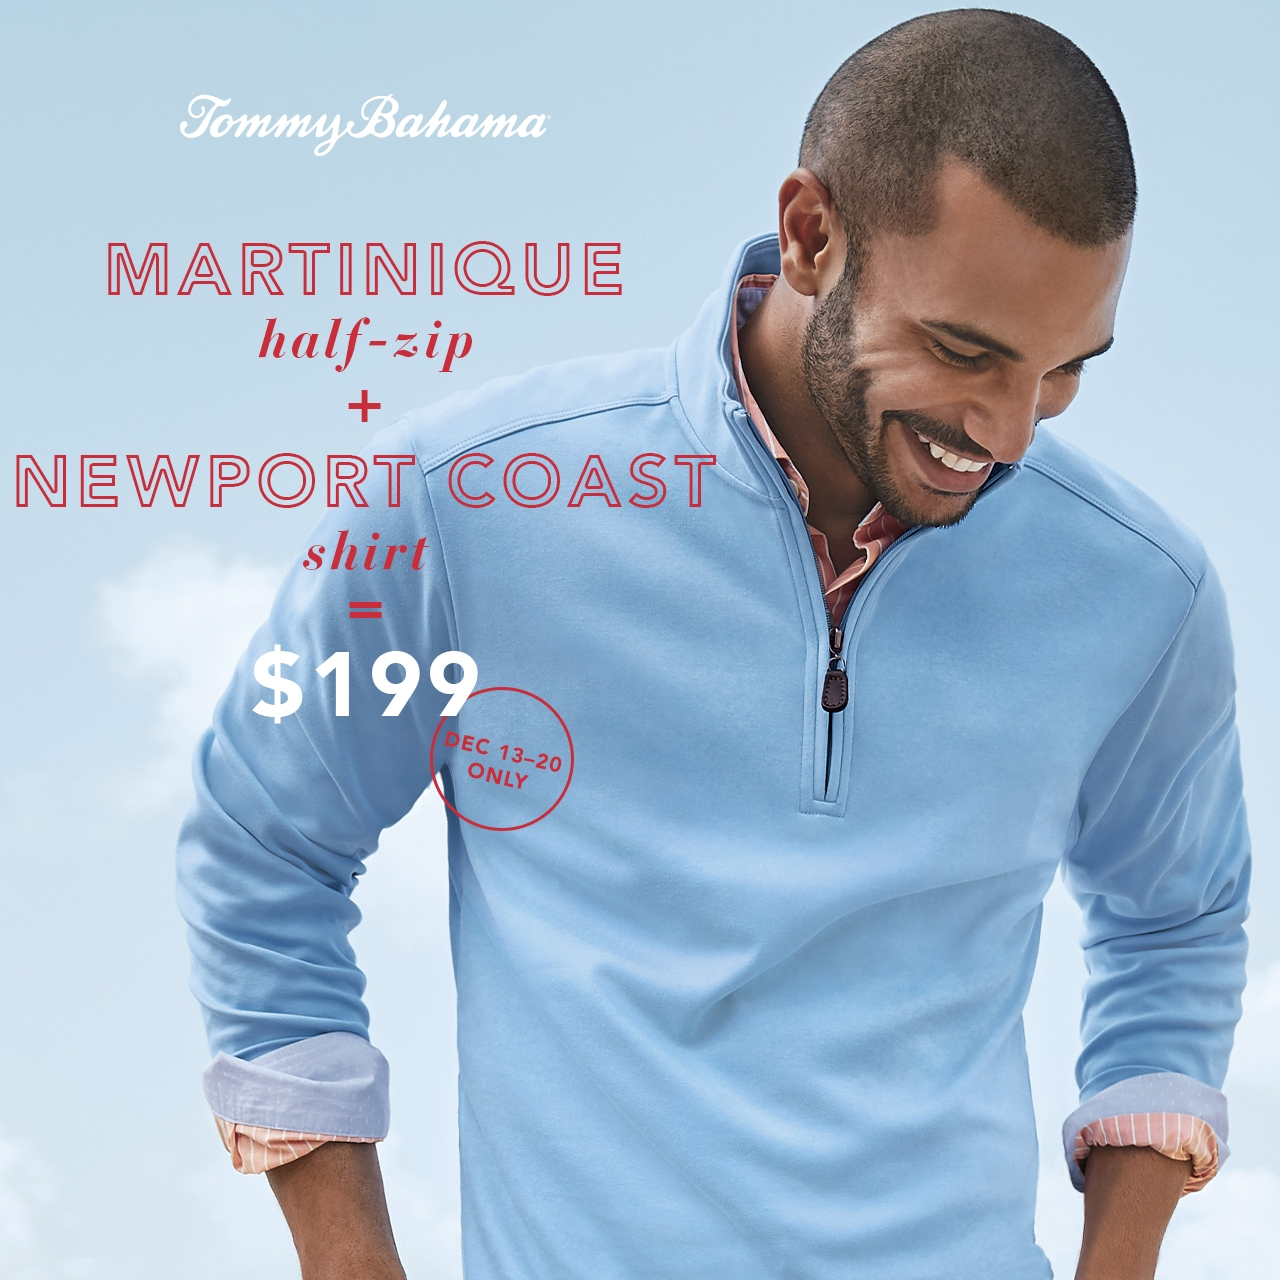 Martinique Half Zip & Newport Coast Shirt from Tommy Bahama